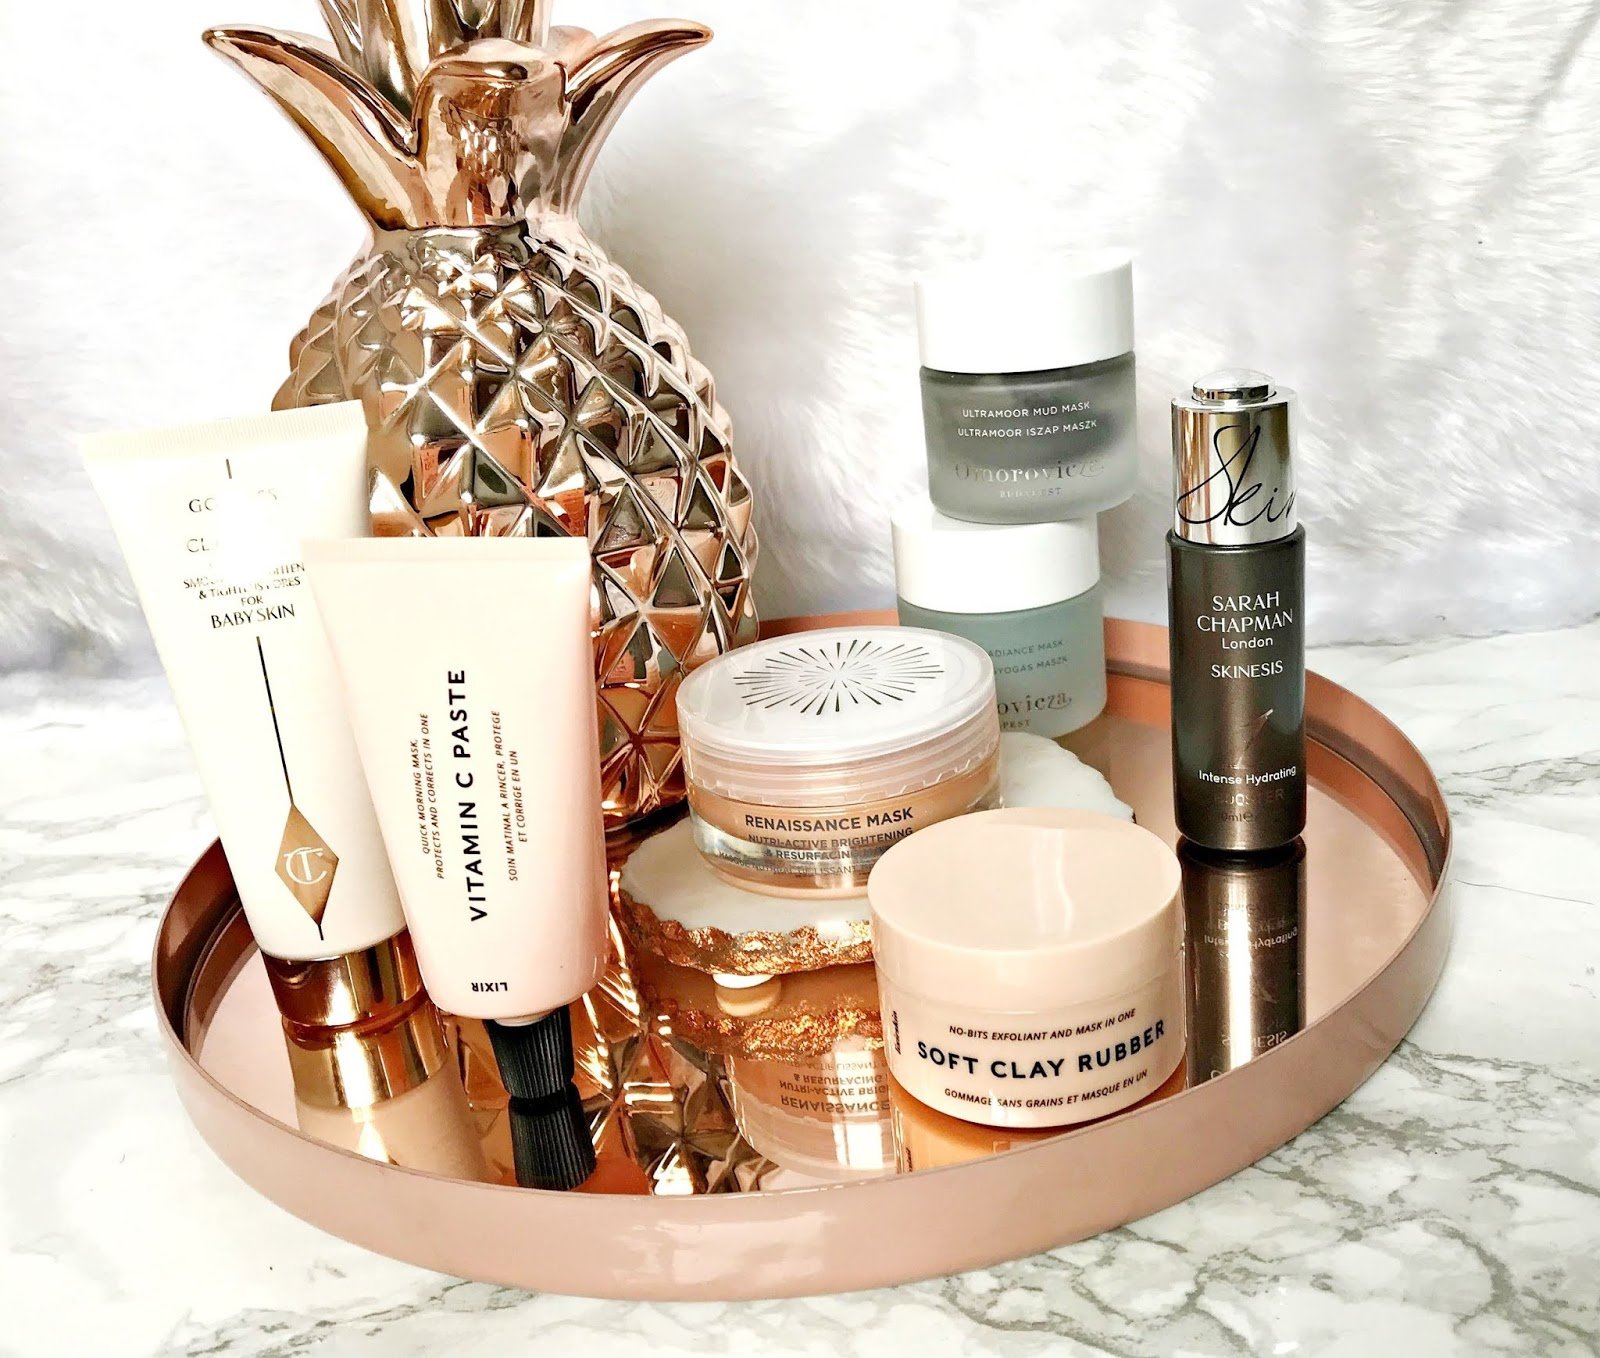 Charlotte Tilbury, Dry Skin, Goddess Skin Clay Mask, Intense Hydrating Booster, Lixirskin, Omorovicza, Omorovicza Midnight Radiance Mask, Omorovicza Ultramoor Mud Mask, Sarah Chapman, skincare,